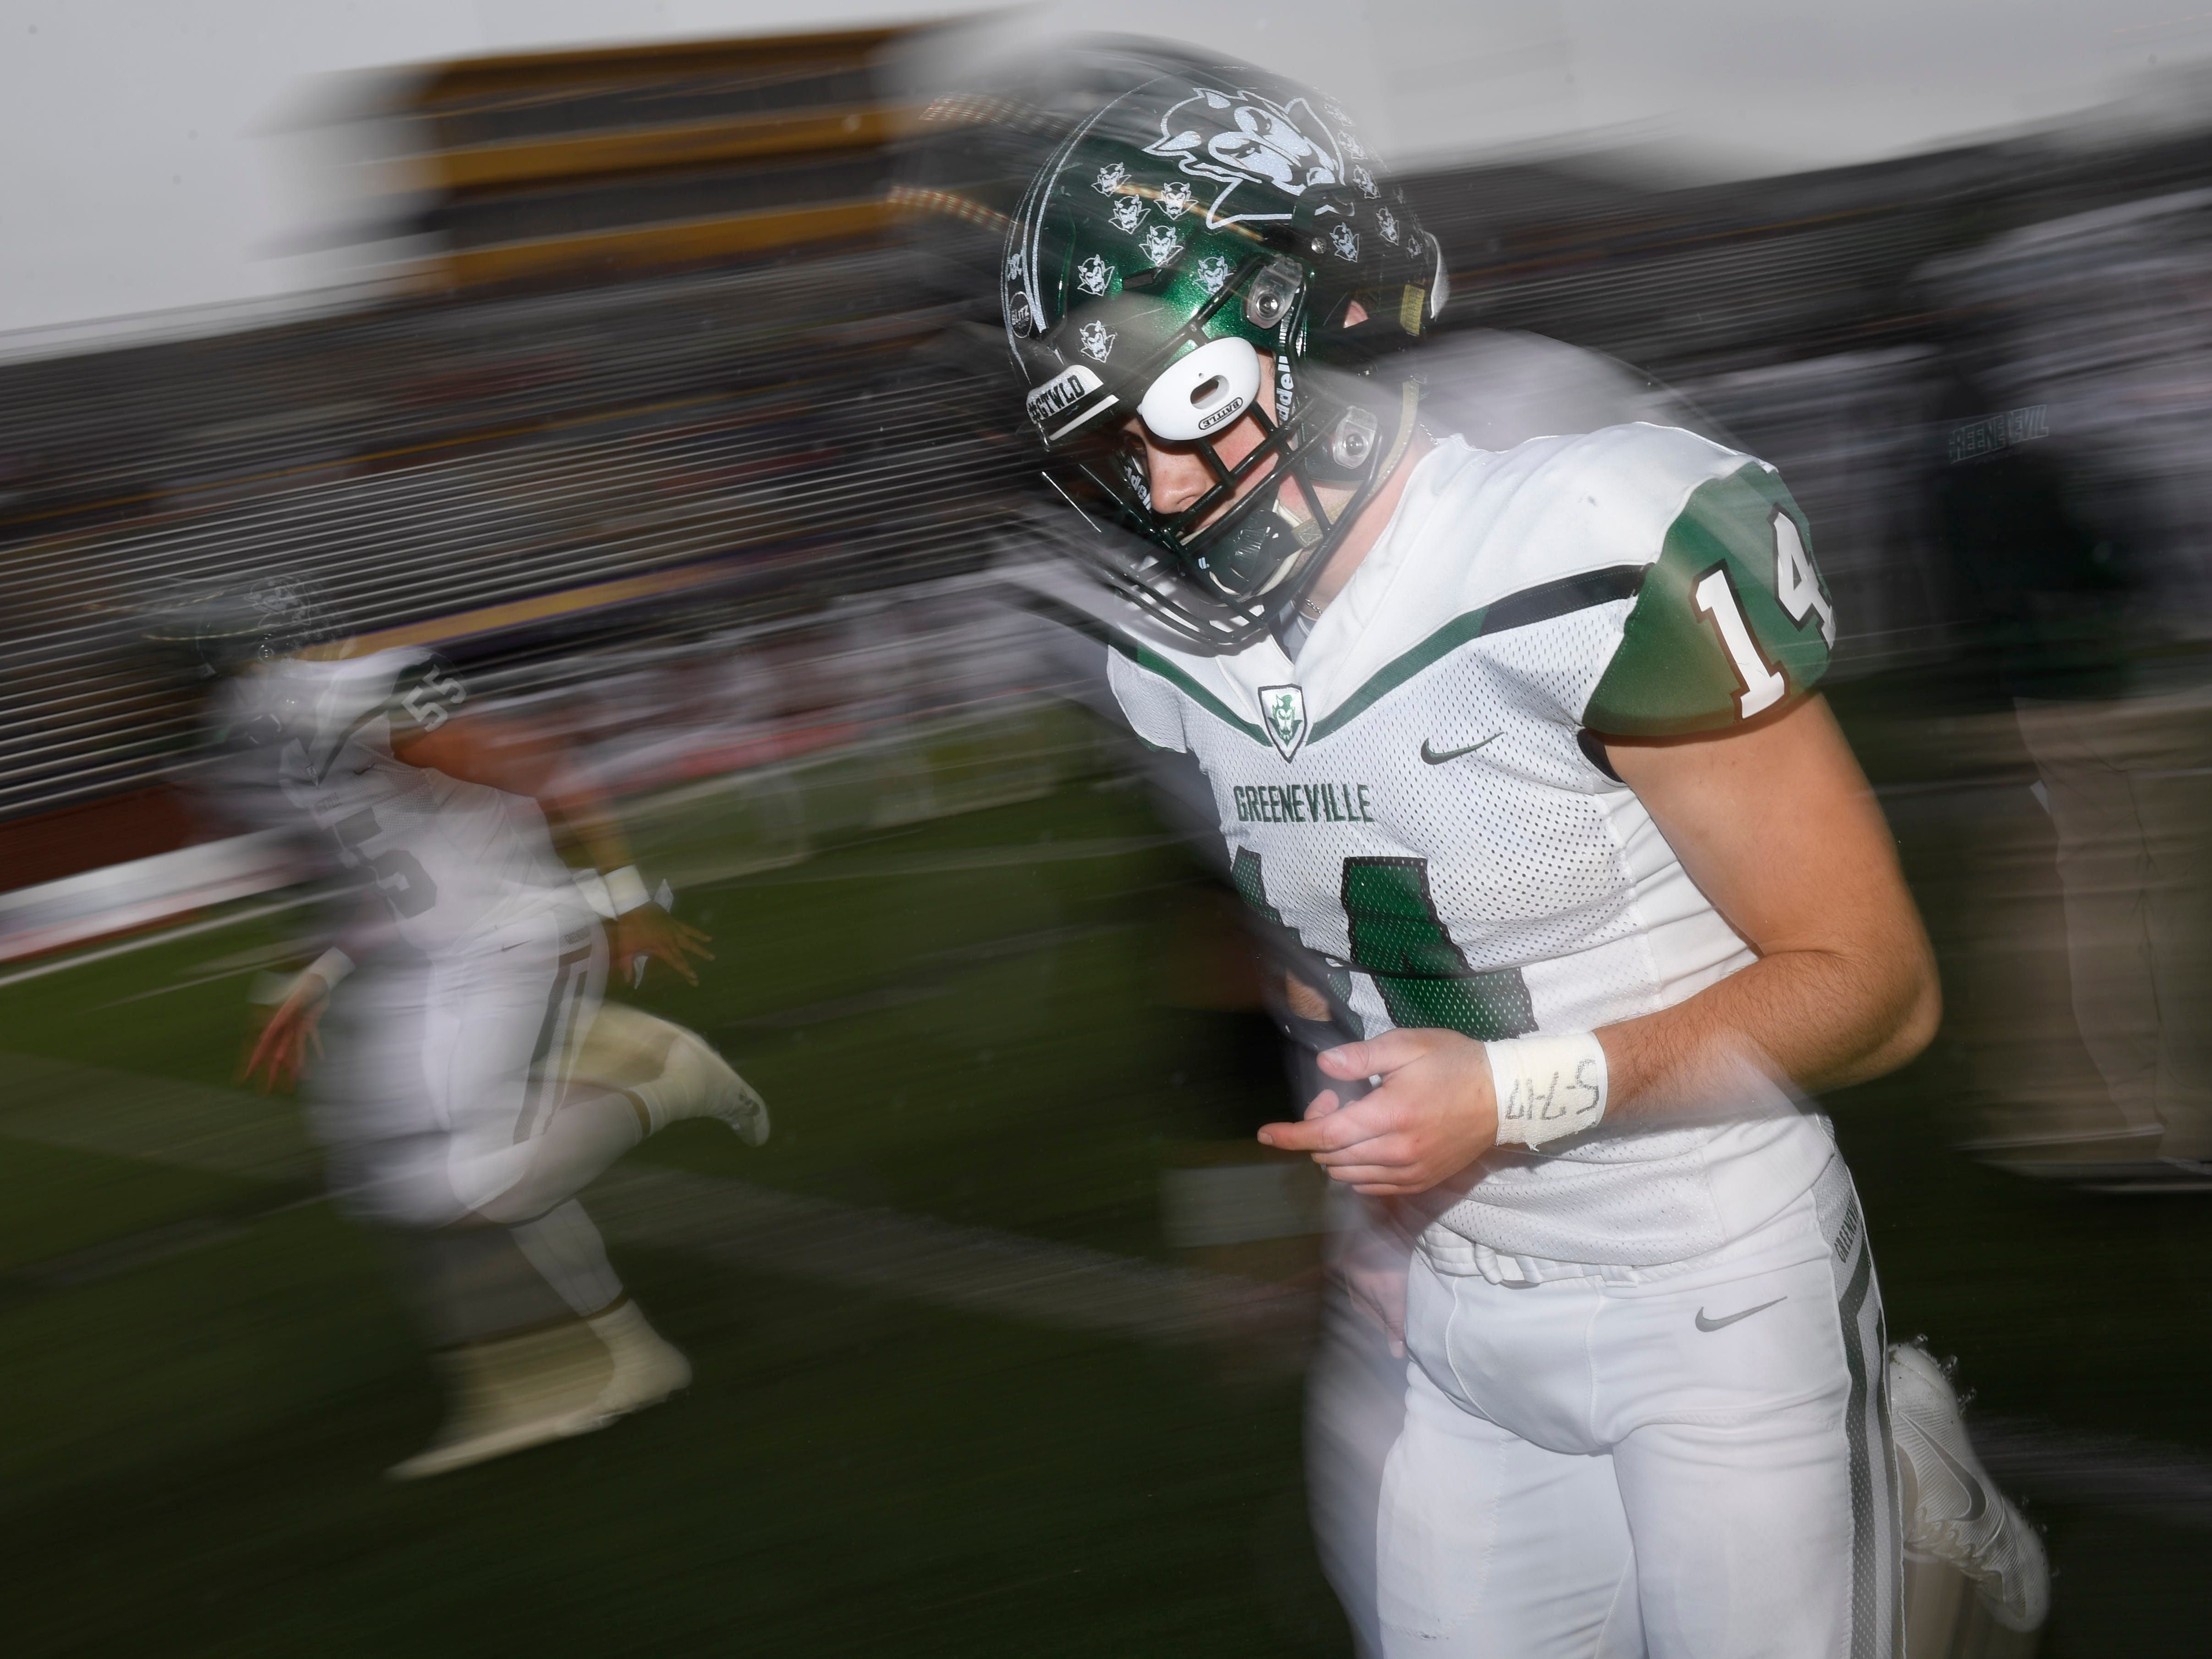 Greeneville's Dalton McLain (14) takes the field for the Class 4A BlueCross Bowl state championship at Tennessee Tech's Tucker Stadium in Cookeville, Tenn., on Thursday, Nov. 29, 2018.